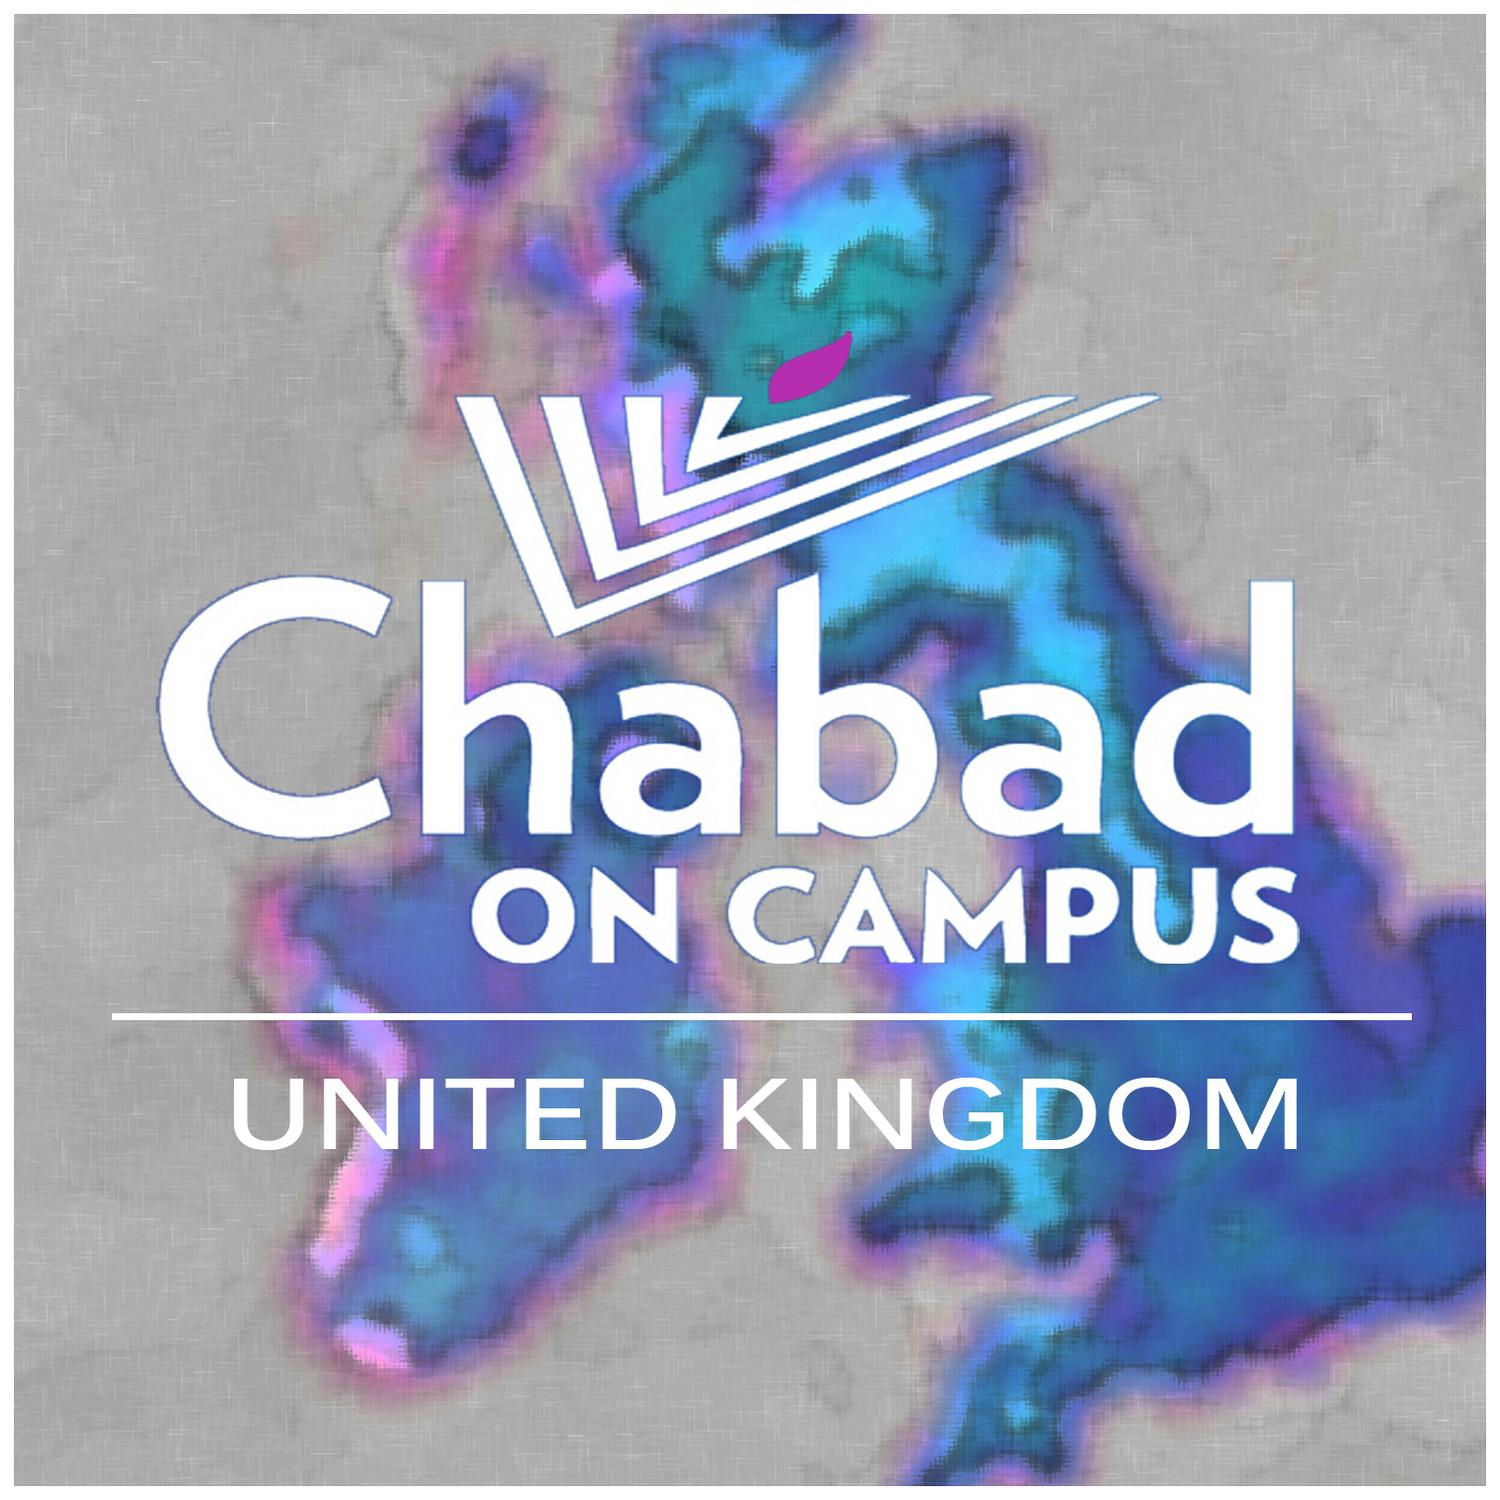 Chabad on Campus UK